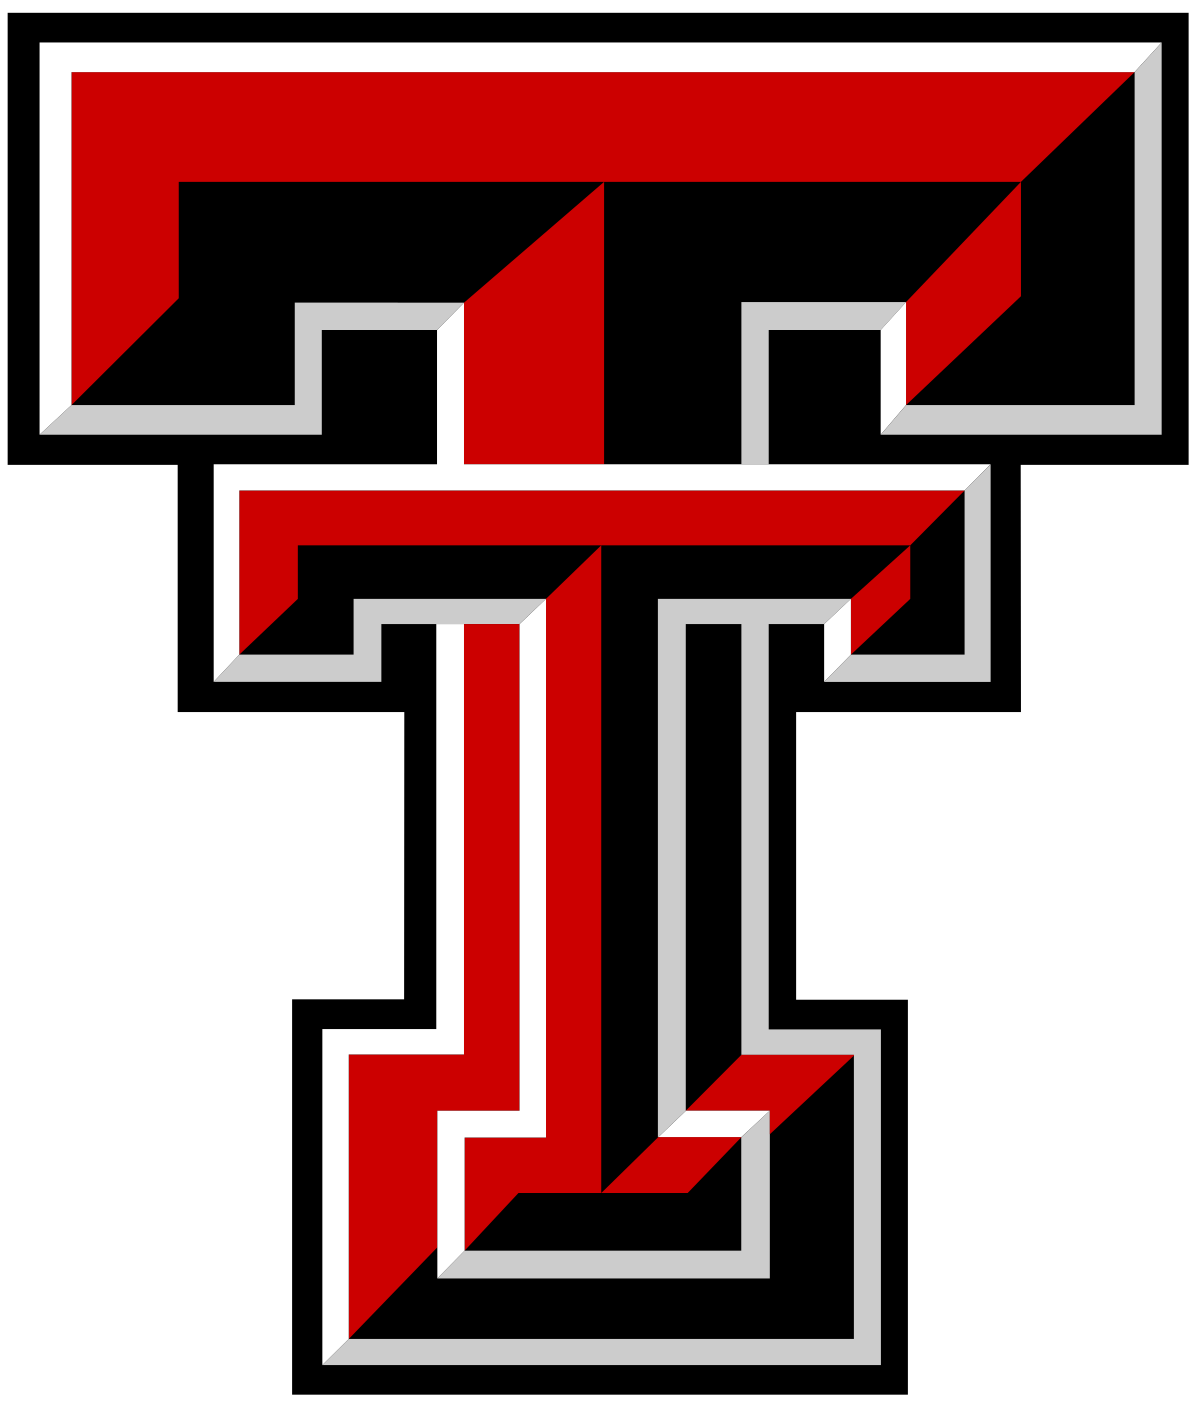 Texas Tech Red Raiders Football – Wikipedia With Regard To Texas Tech University Holiday Schedule 2021